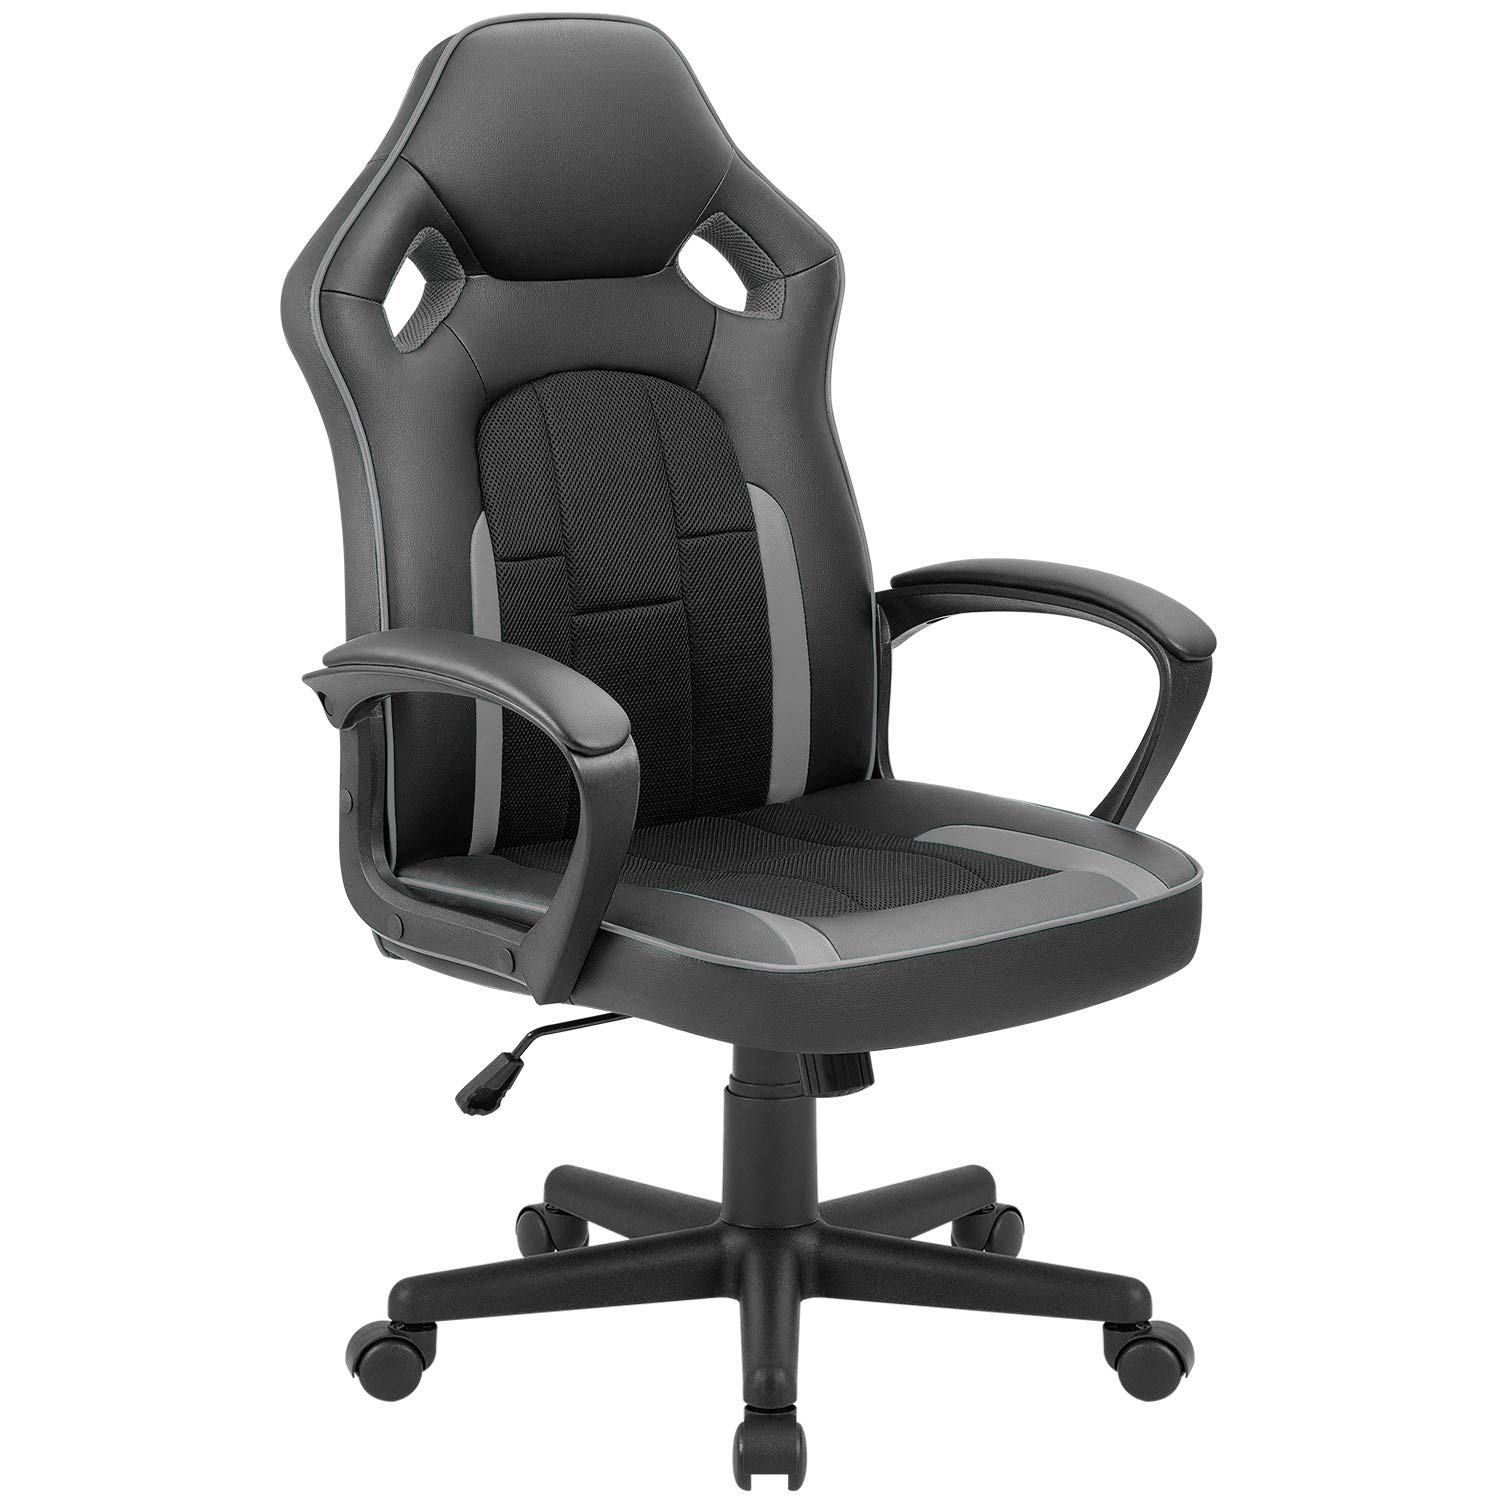 Tuoze Office Desk Chair Racing Style High Back Leather Gaming Chair Ergonomic Adjustable Swivel Executive Computer Chair for Home and Office Grey